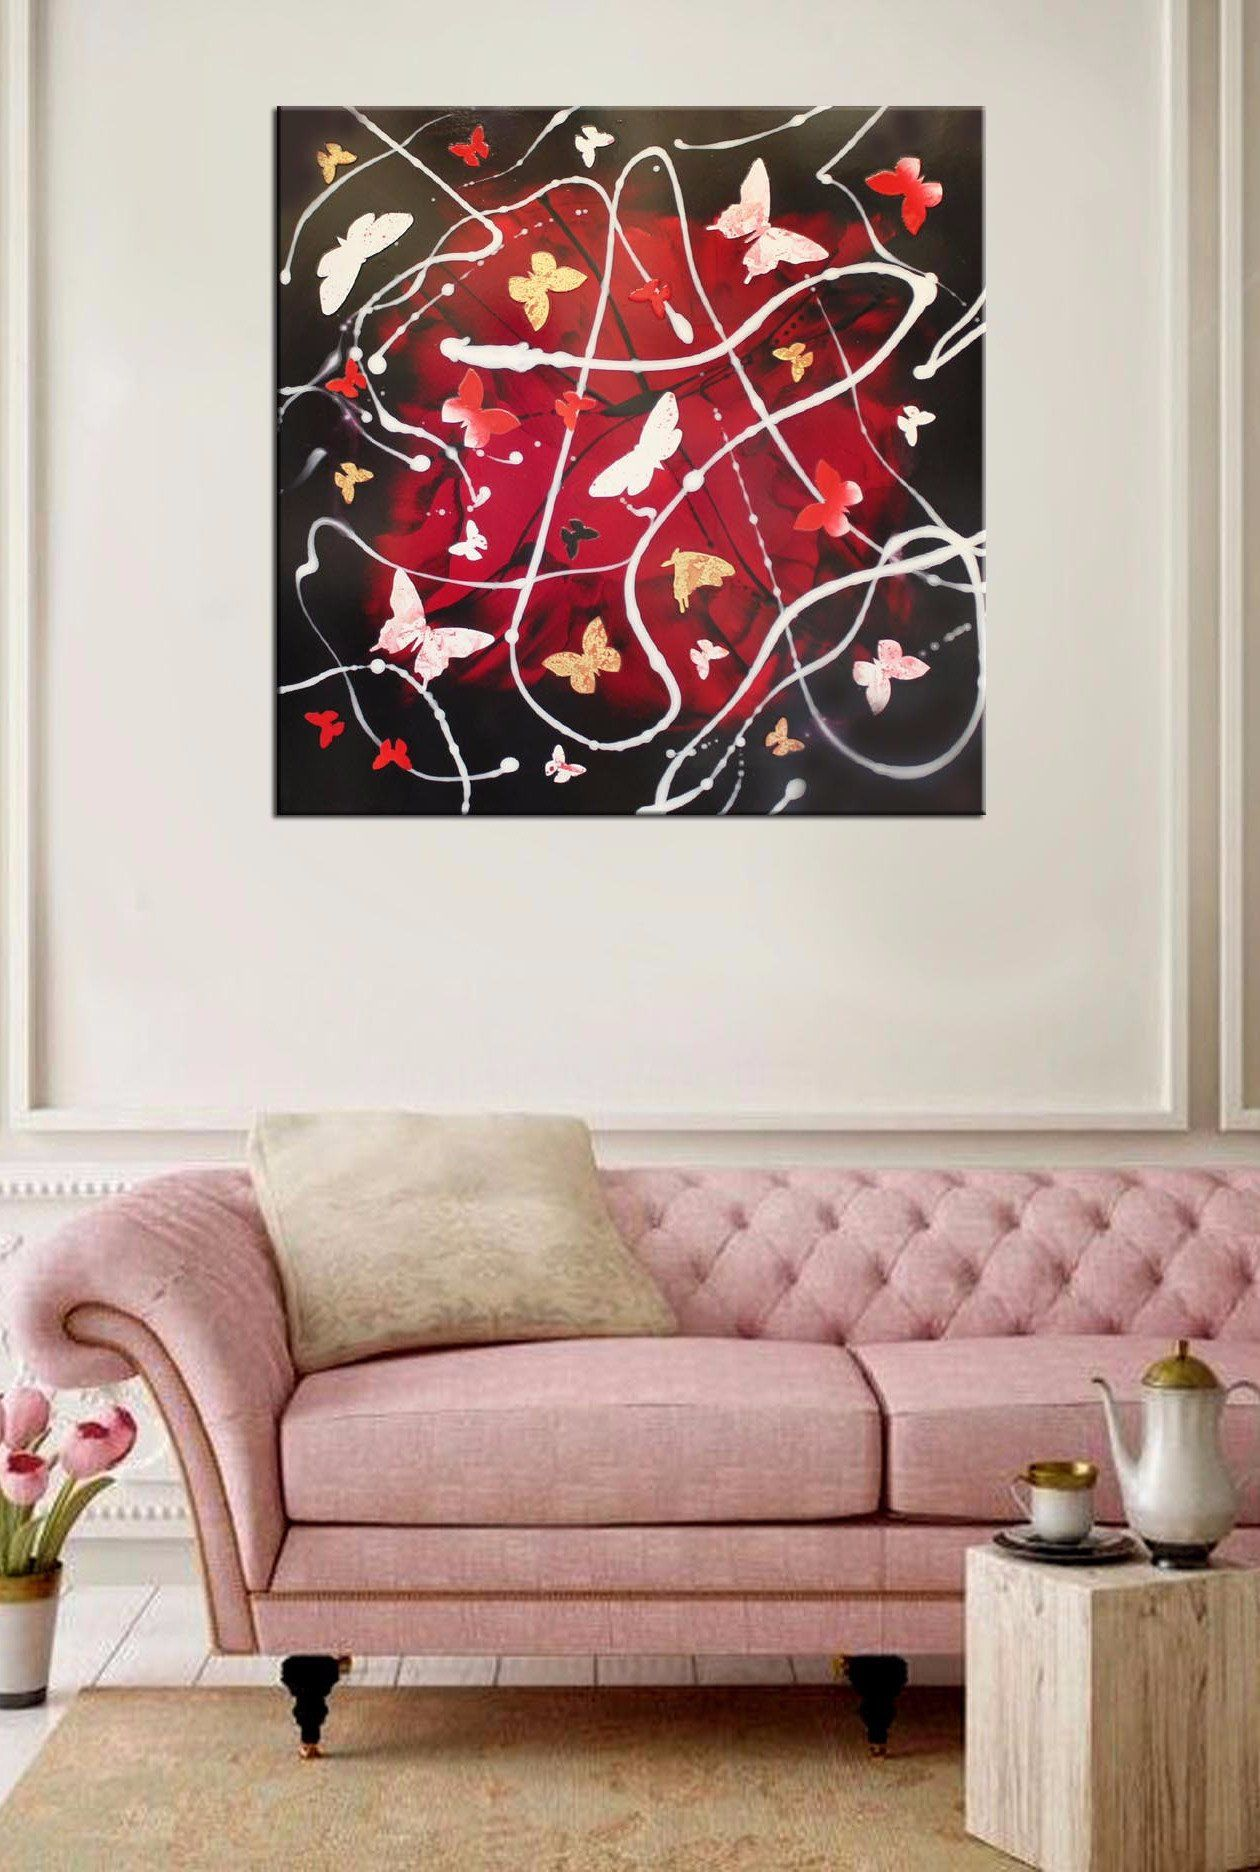 Scarlett Dream (Gloss) Butterfly Wall Artbutterfly